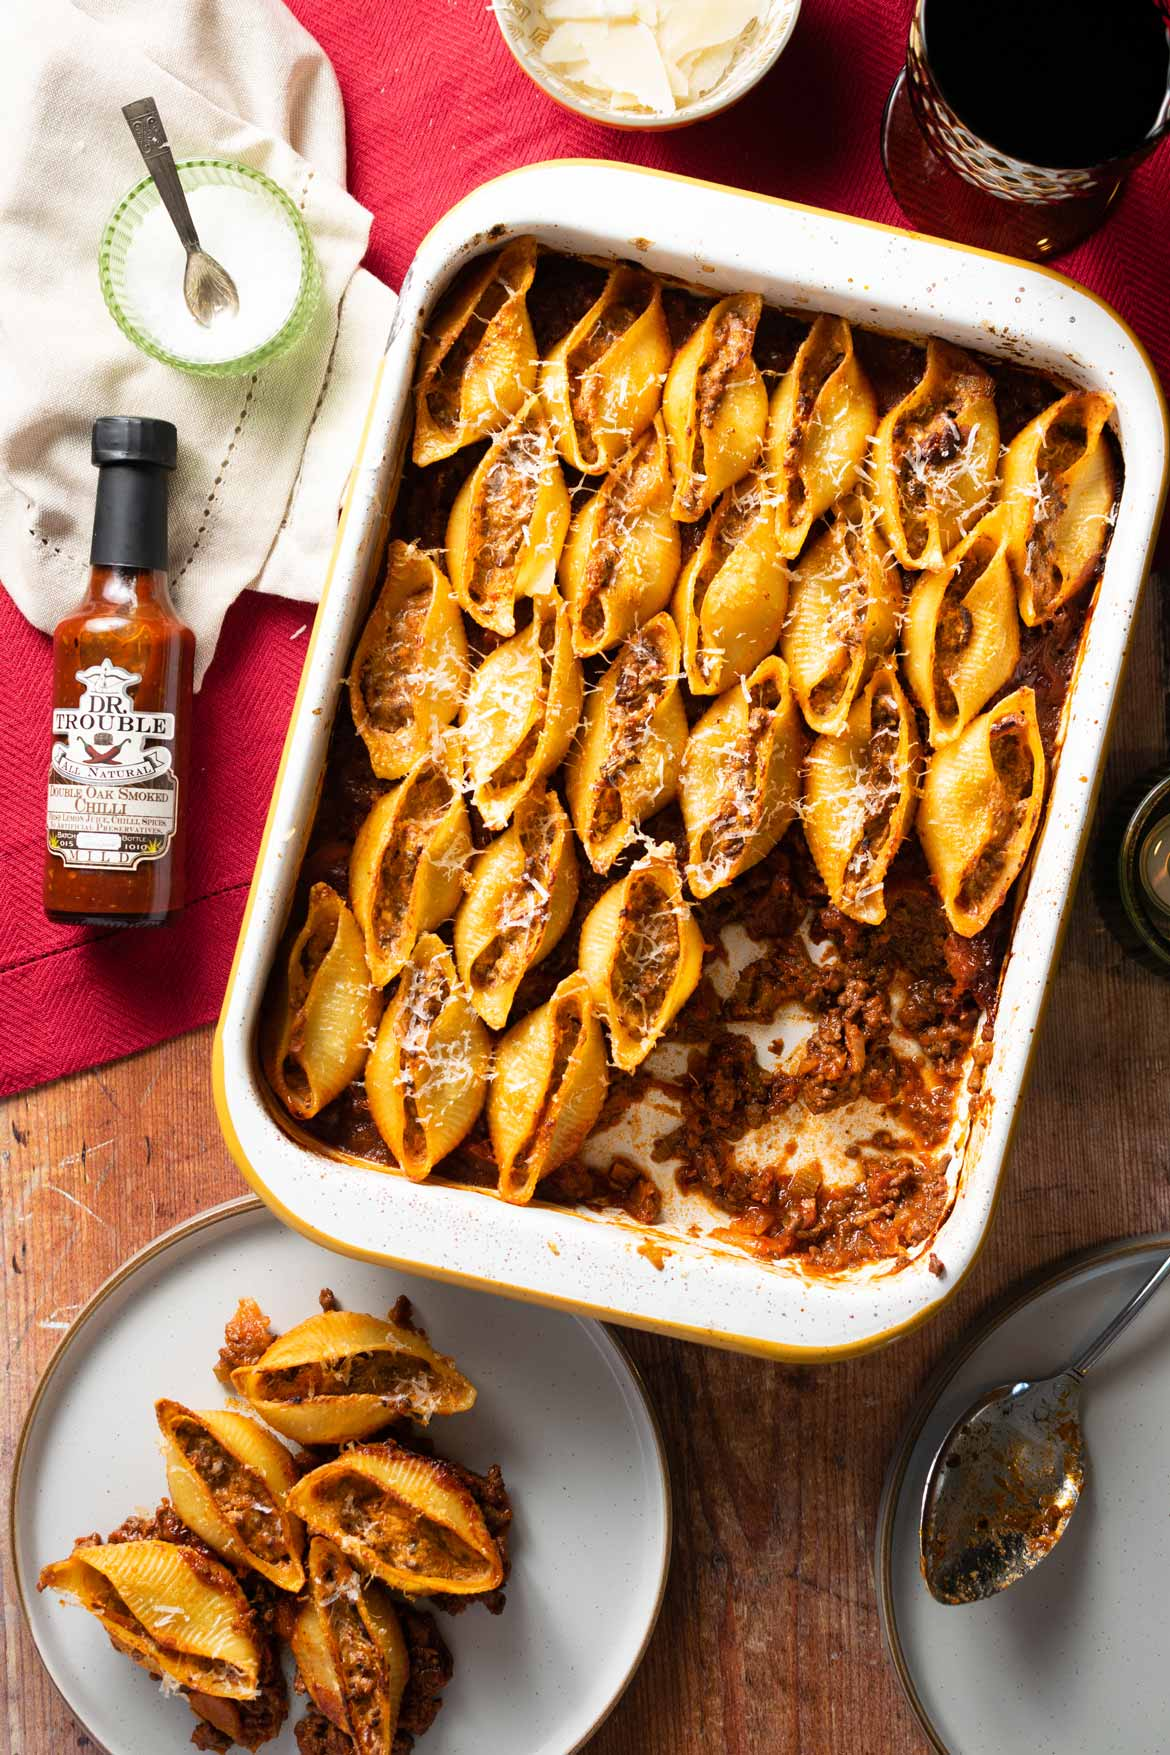 Dr-Trouble-Smoked-Chilli-Pasta-Shells-with-hot-sauce-bottle